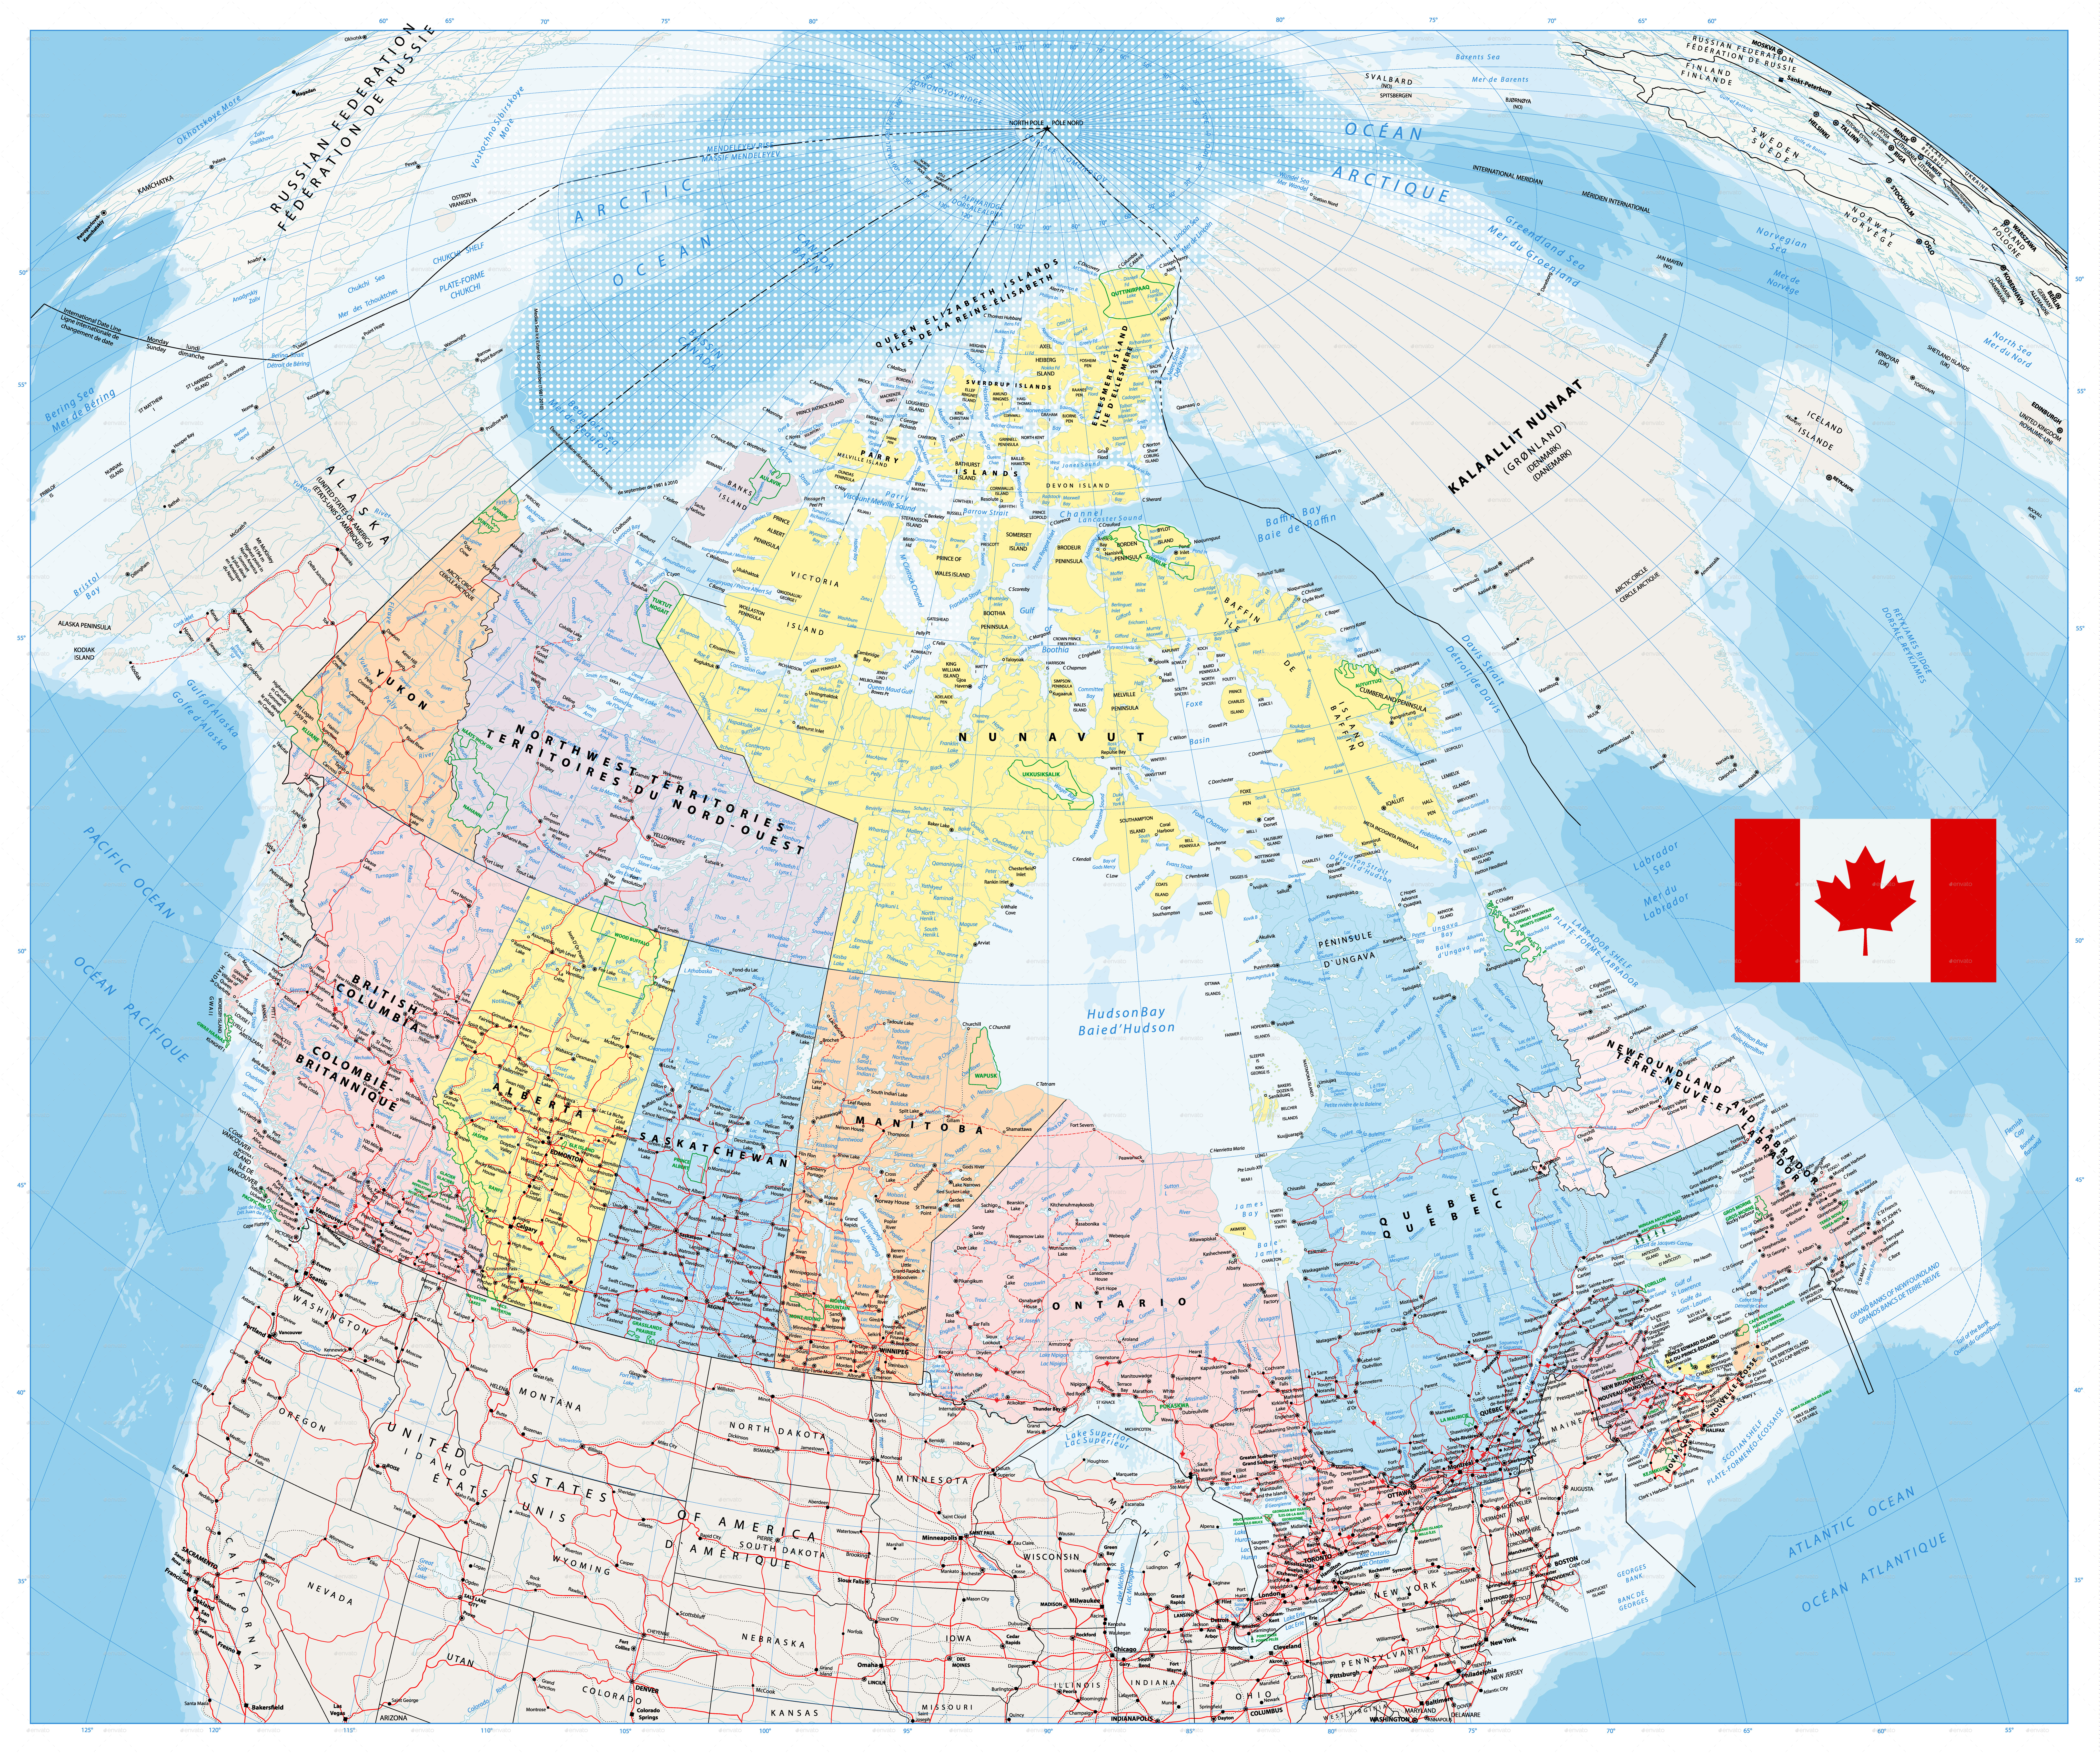 Giant Detailed Political Map Of Canada With Cities And Towns By - Canada political map